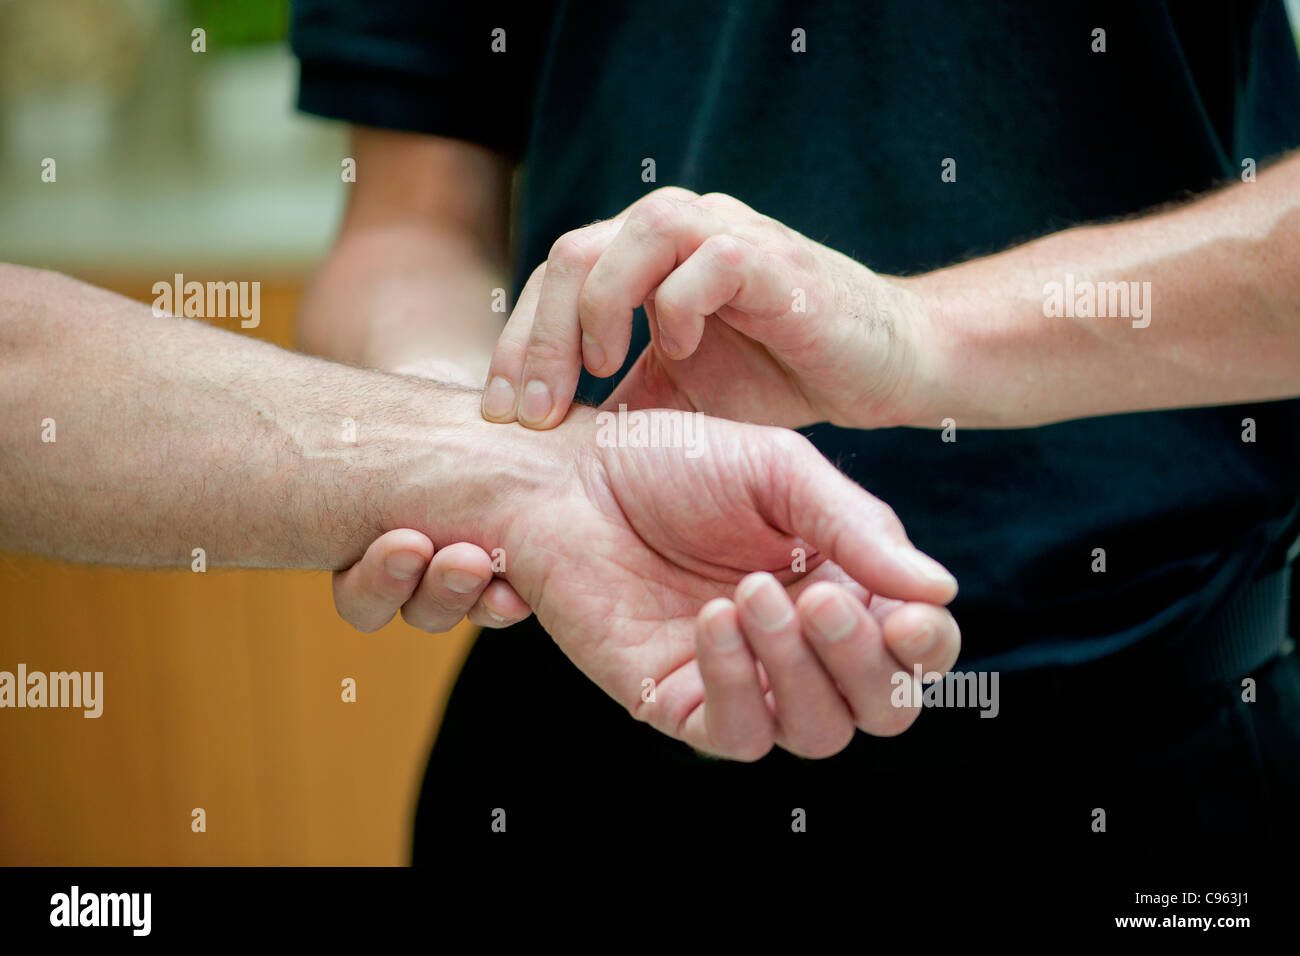 Taking a pulse. - Stock Image